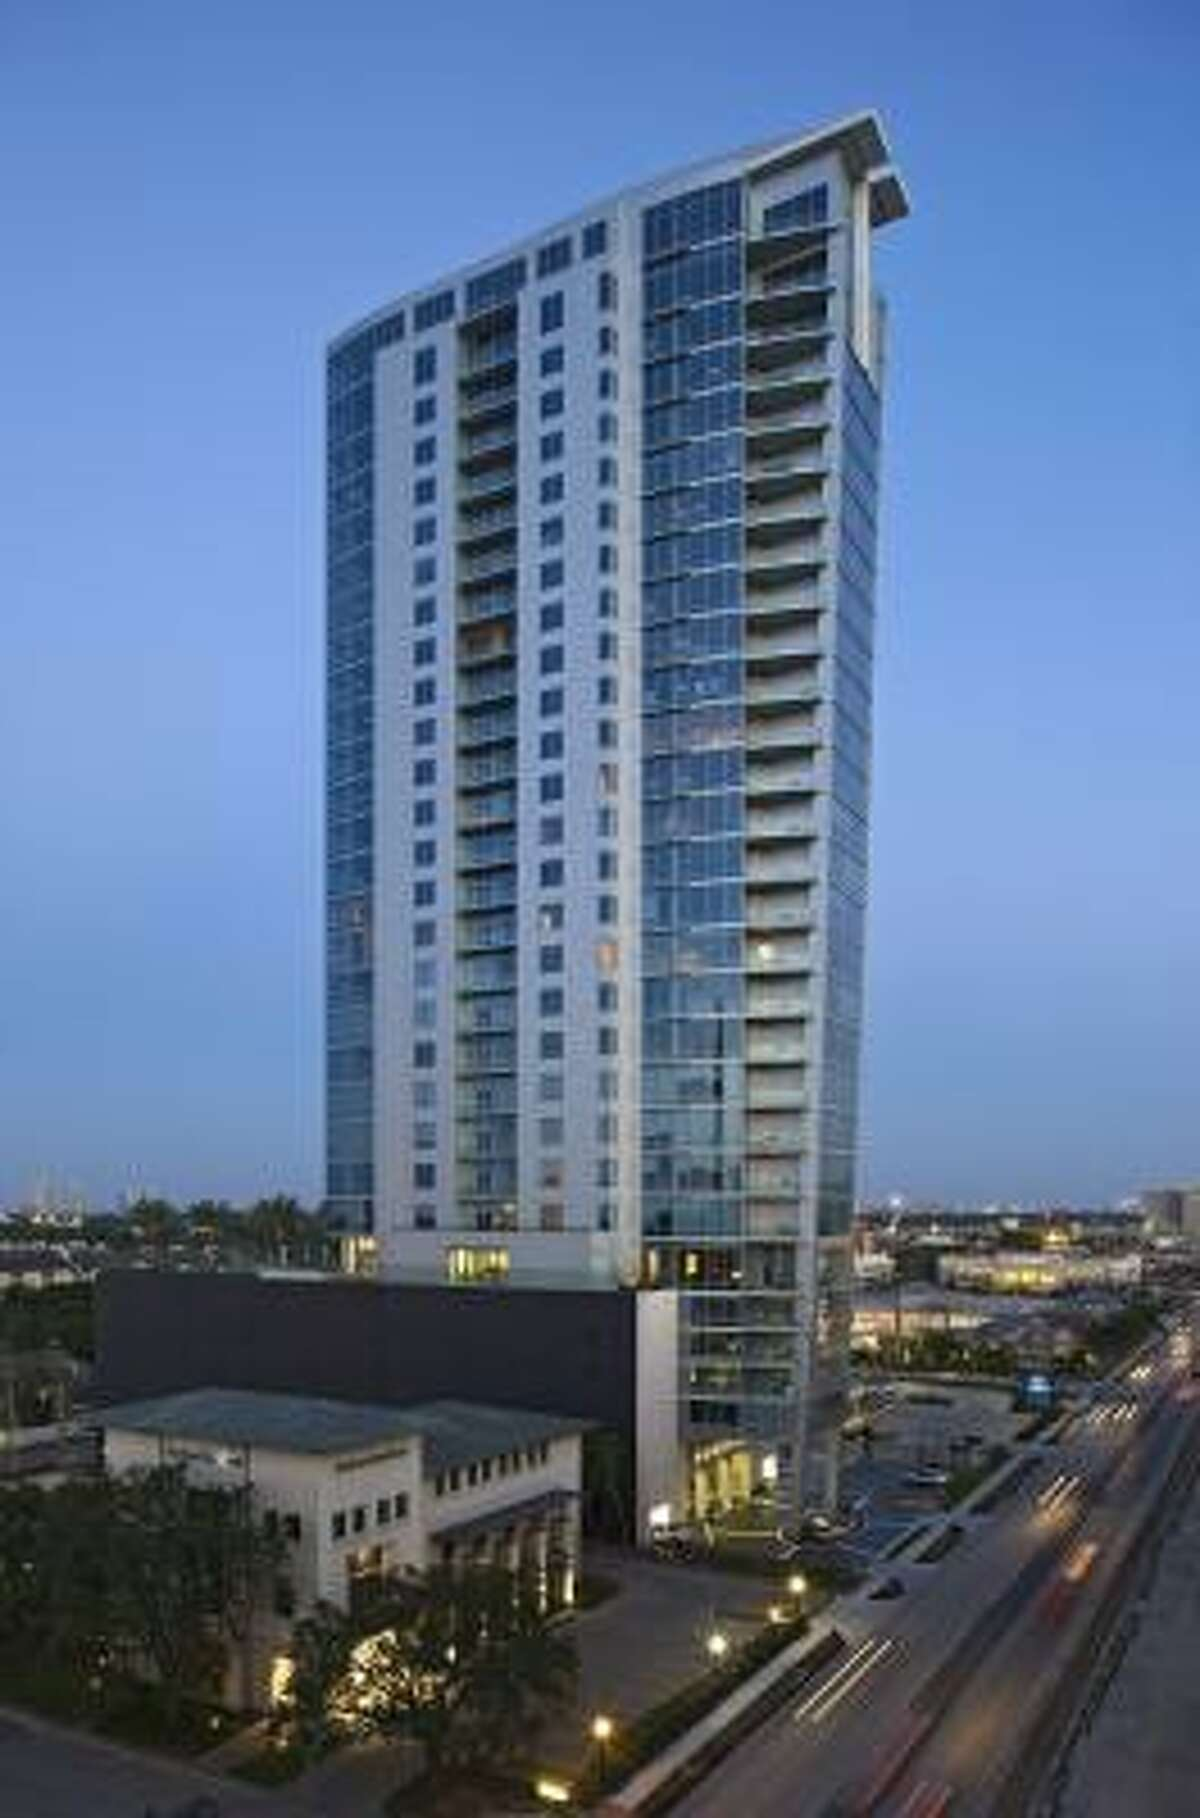 2727 Kirby is a modern, 30-story condominium with more than six dozen units..